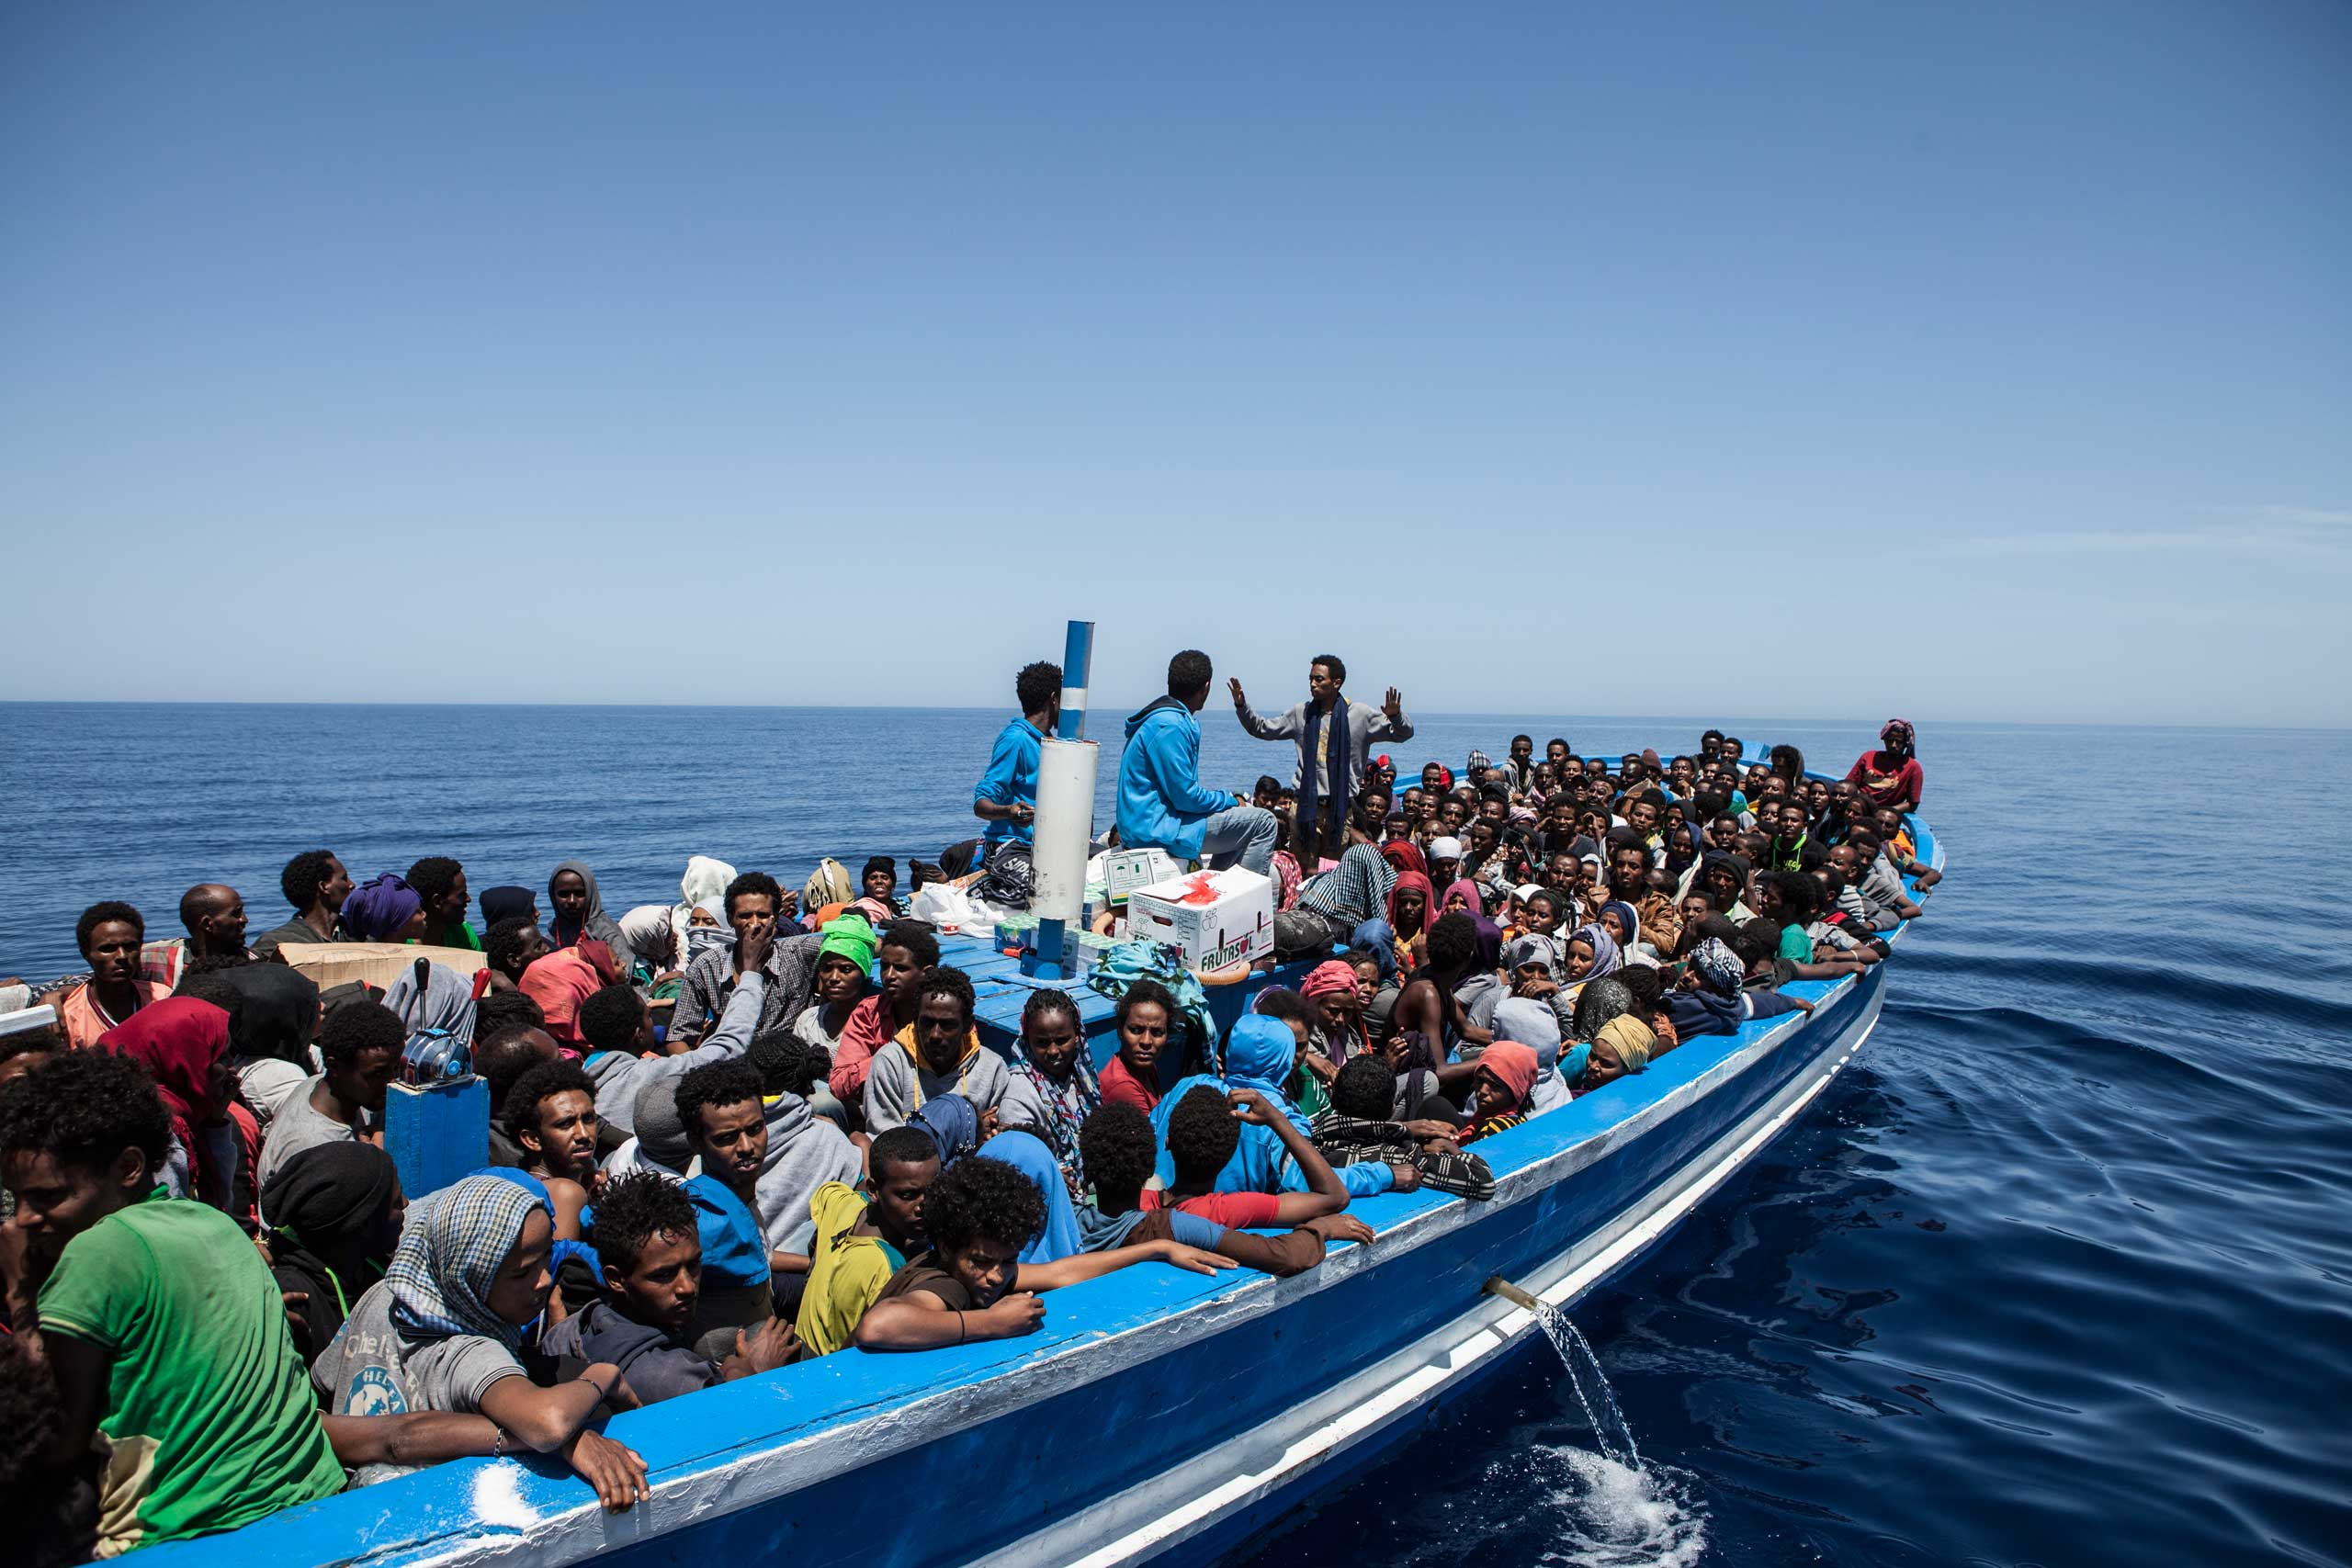 Migrants on a packed wooden boat wait to be rescued off the coast of Malta on May 3, 2015.